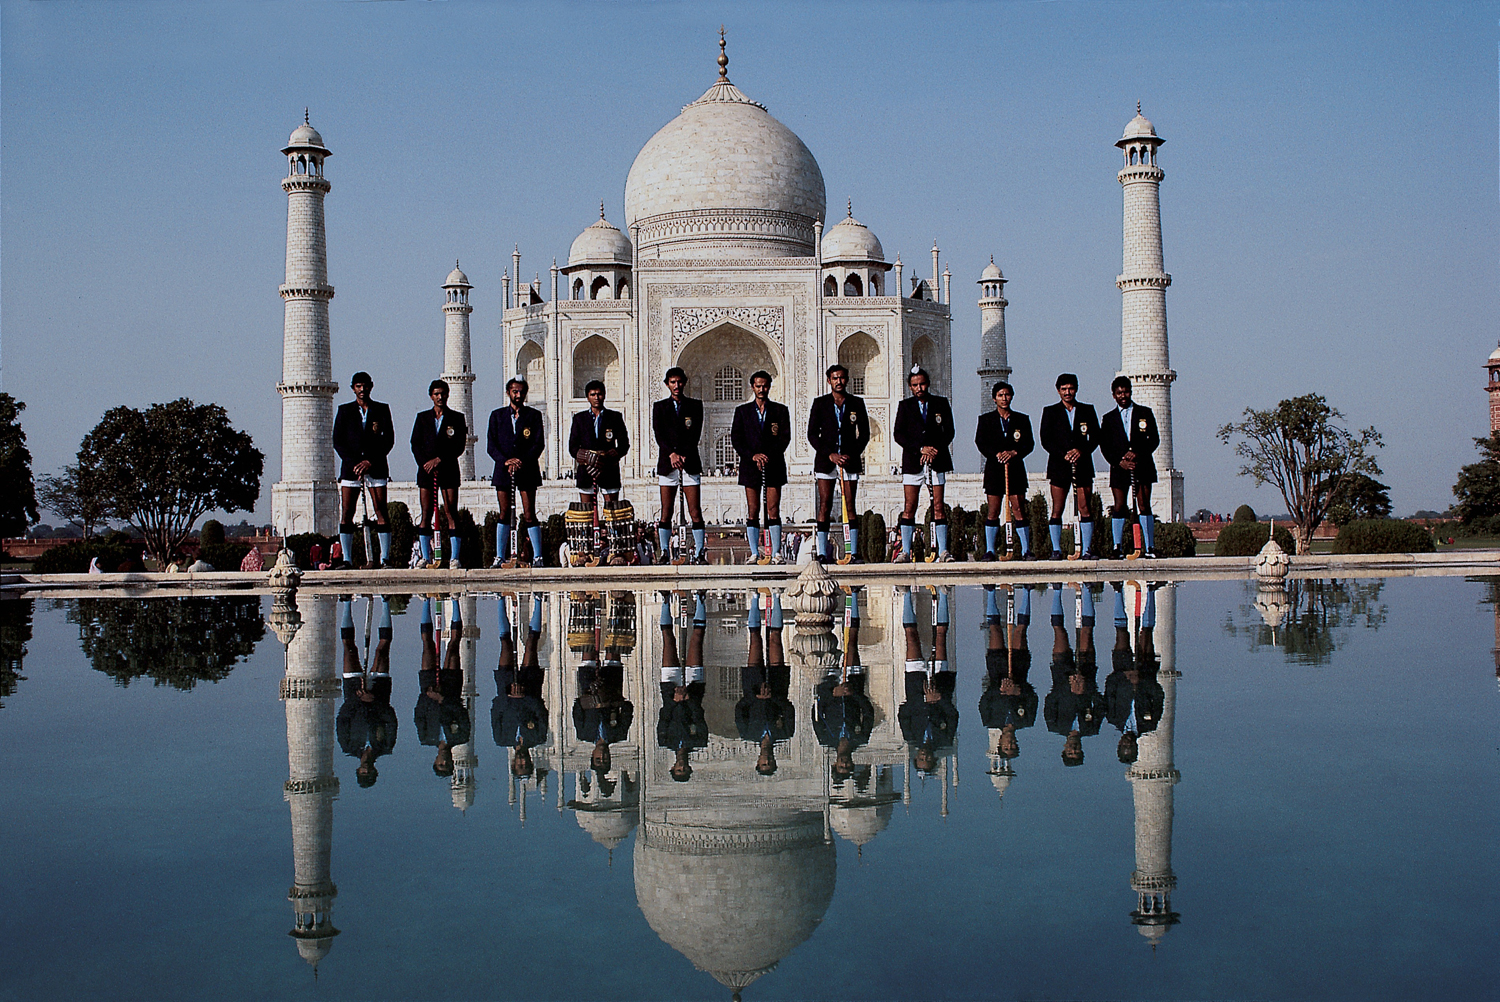 The Indian field hockey team poses in front of the Taj Mahal in Agra, India.